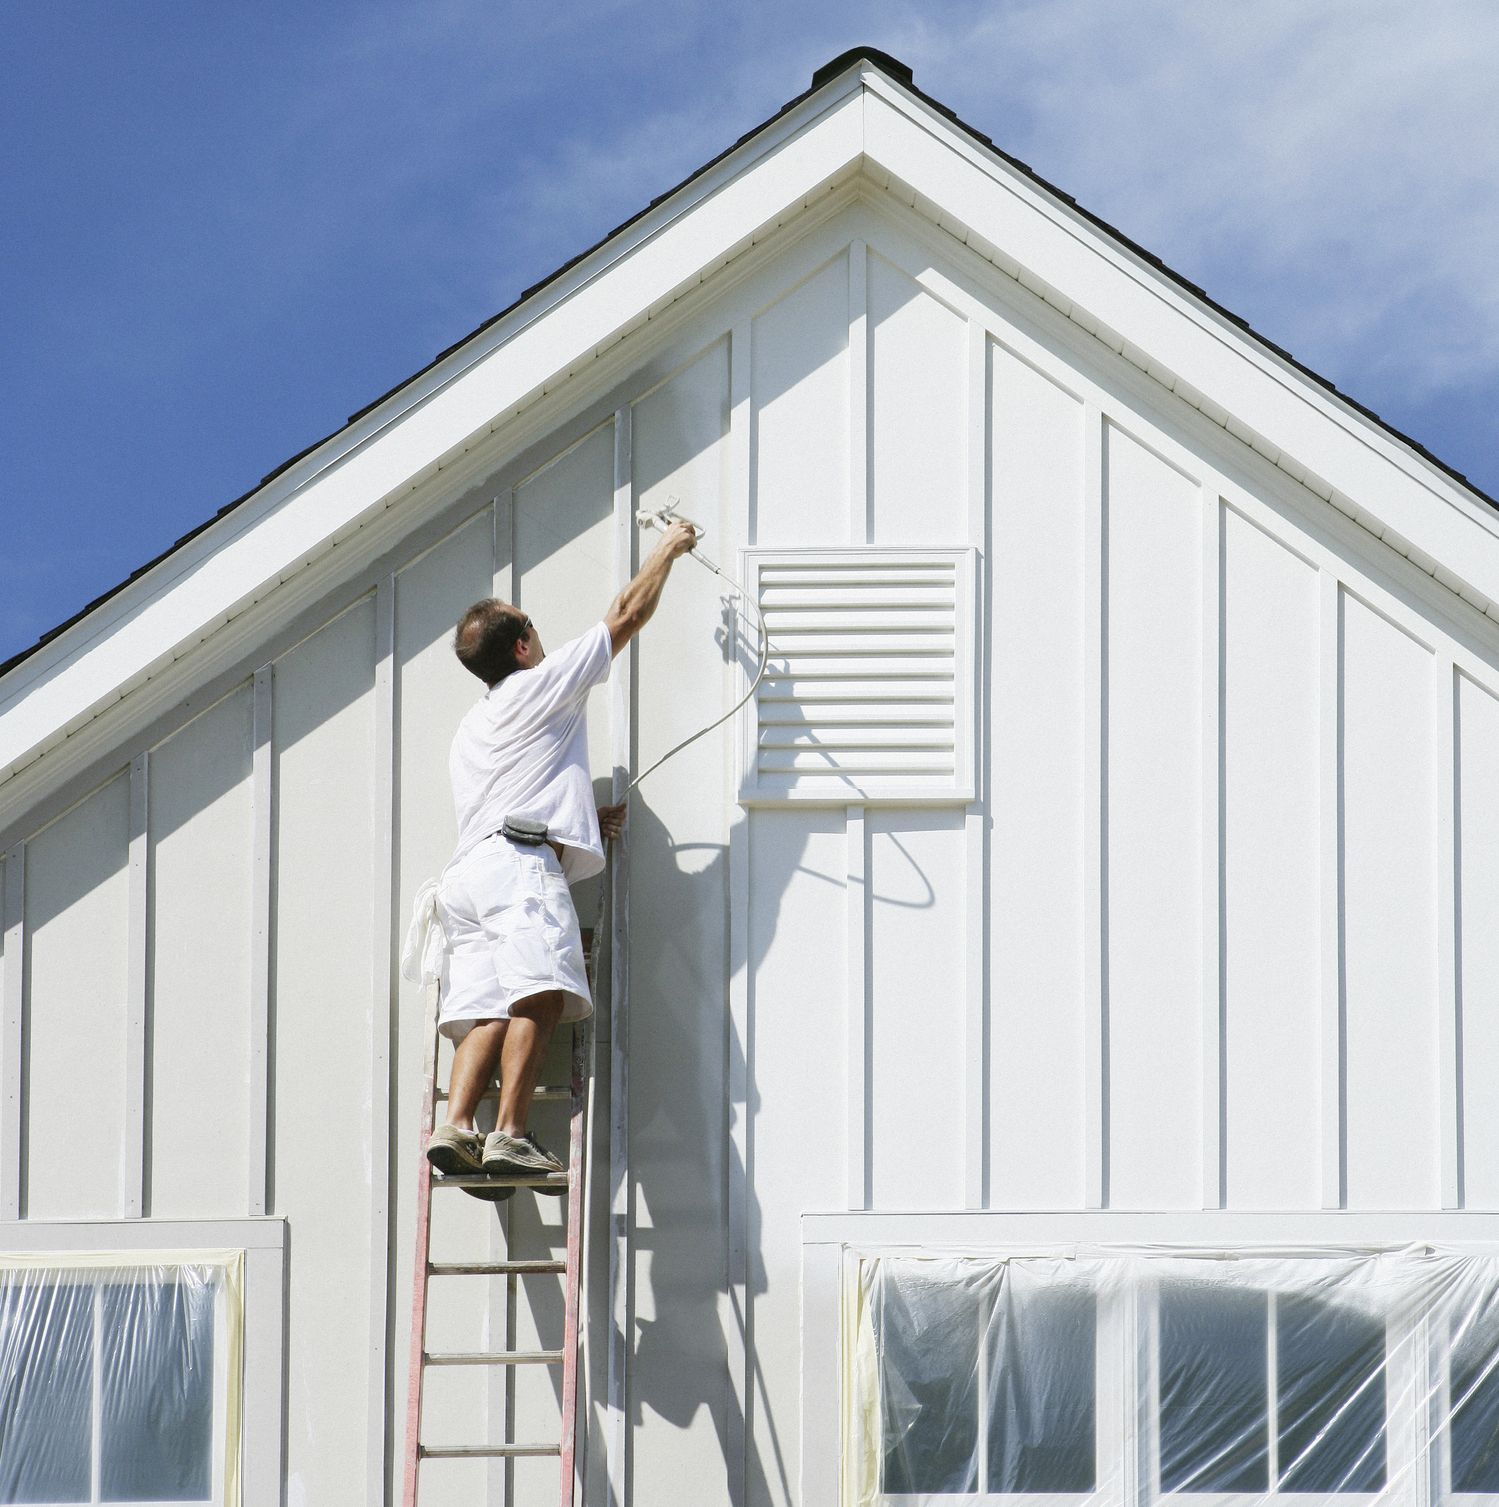 Why Do Professional Painters Wear White?